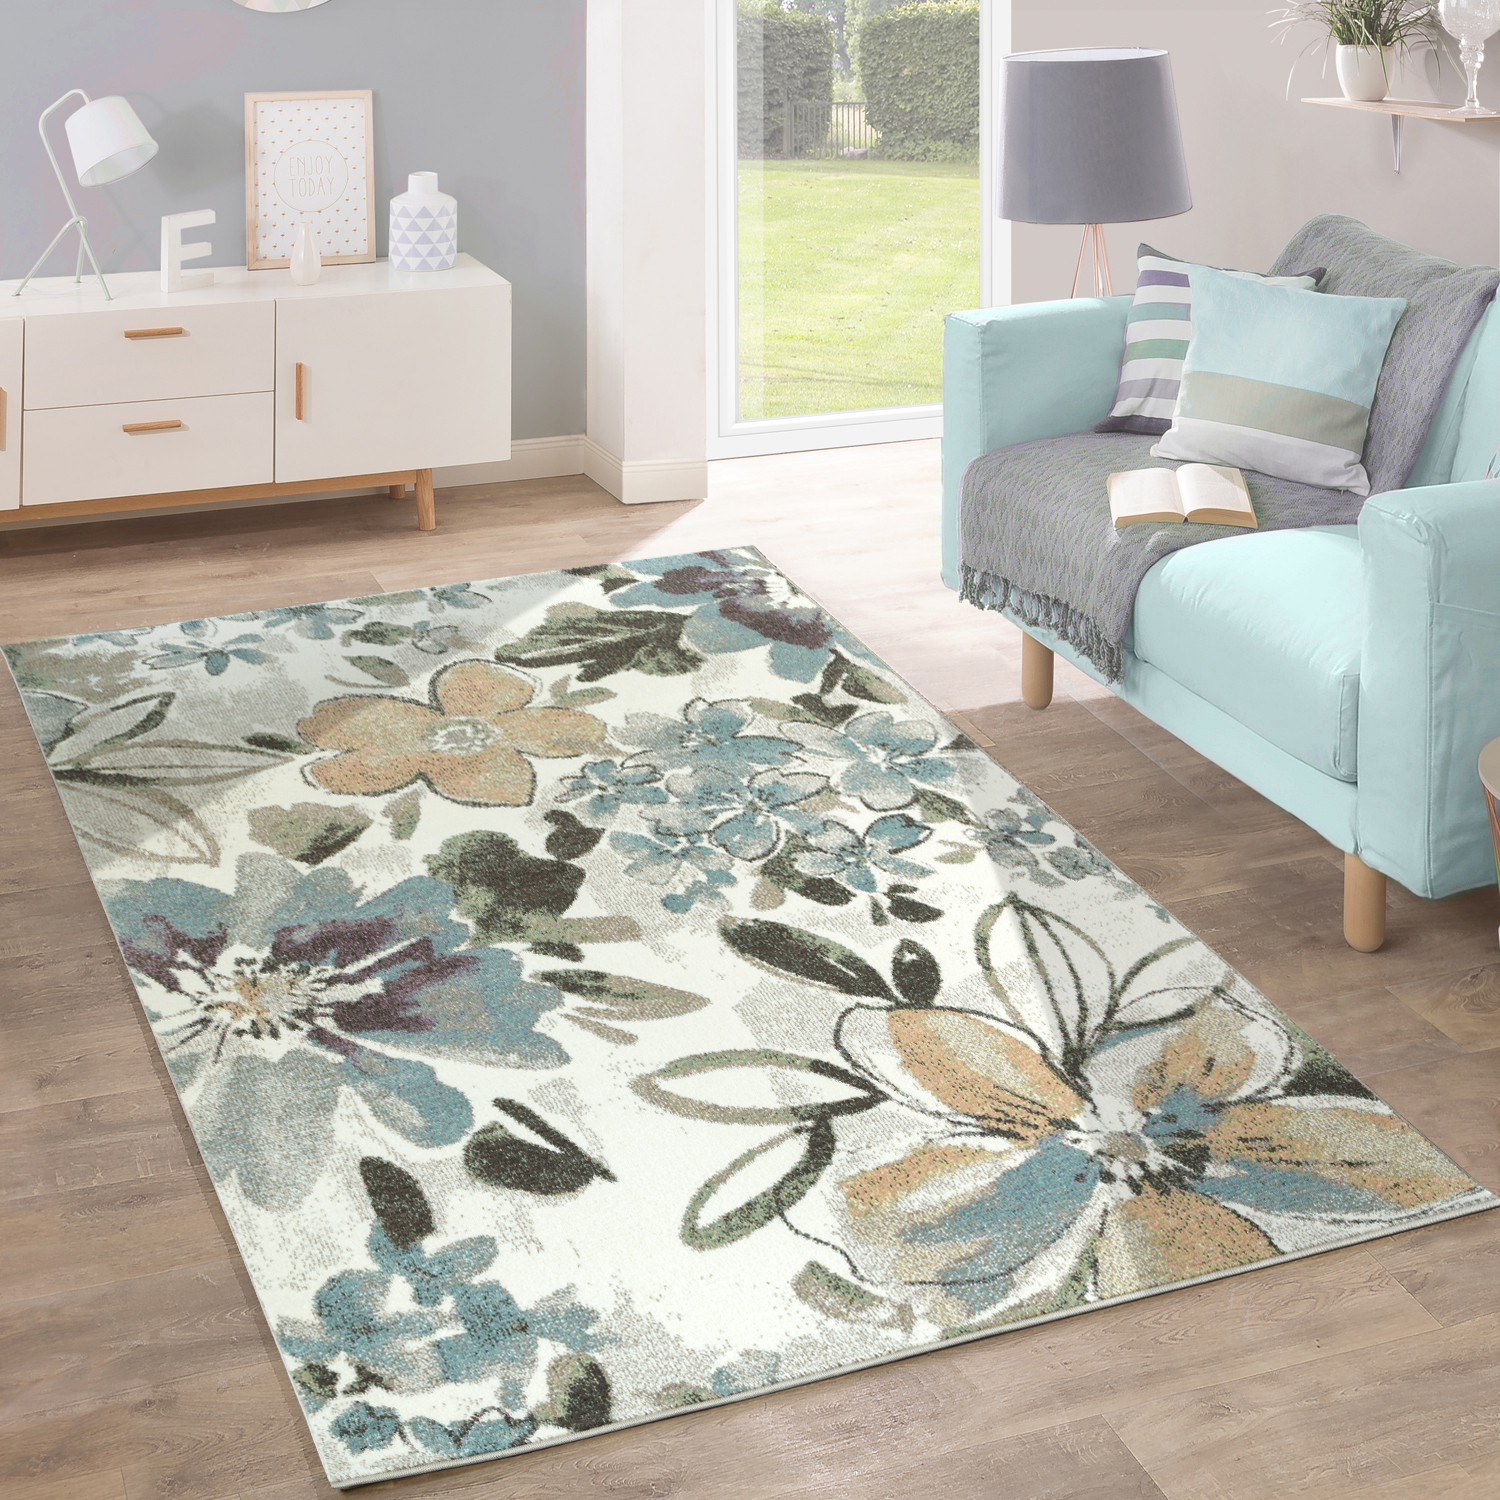 Designer Rug Modern Living Room Flowers Pattern Pastel Tones In Grey Blue Cream